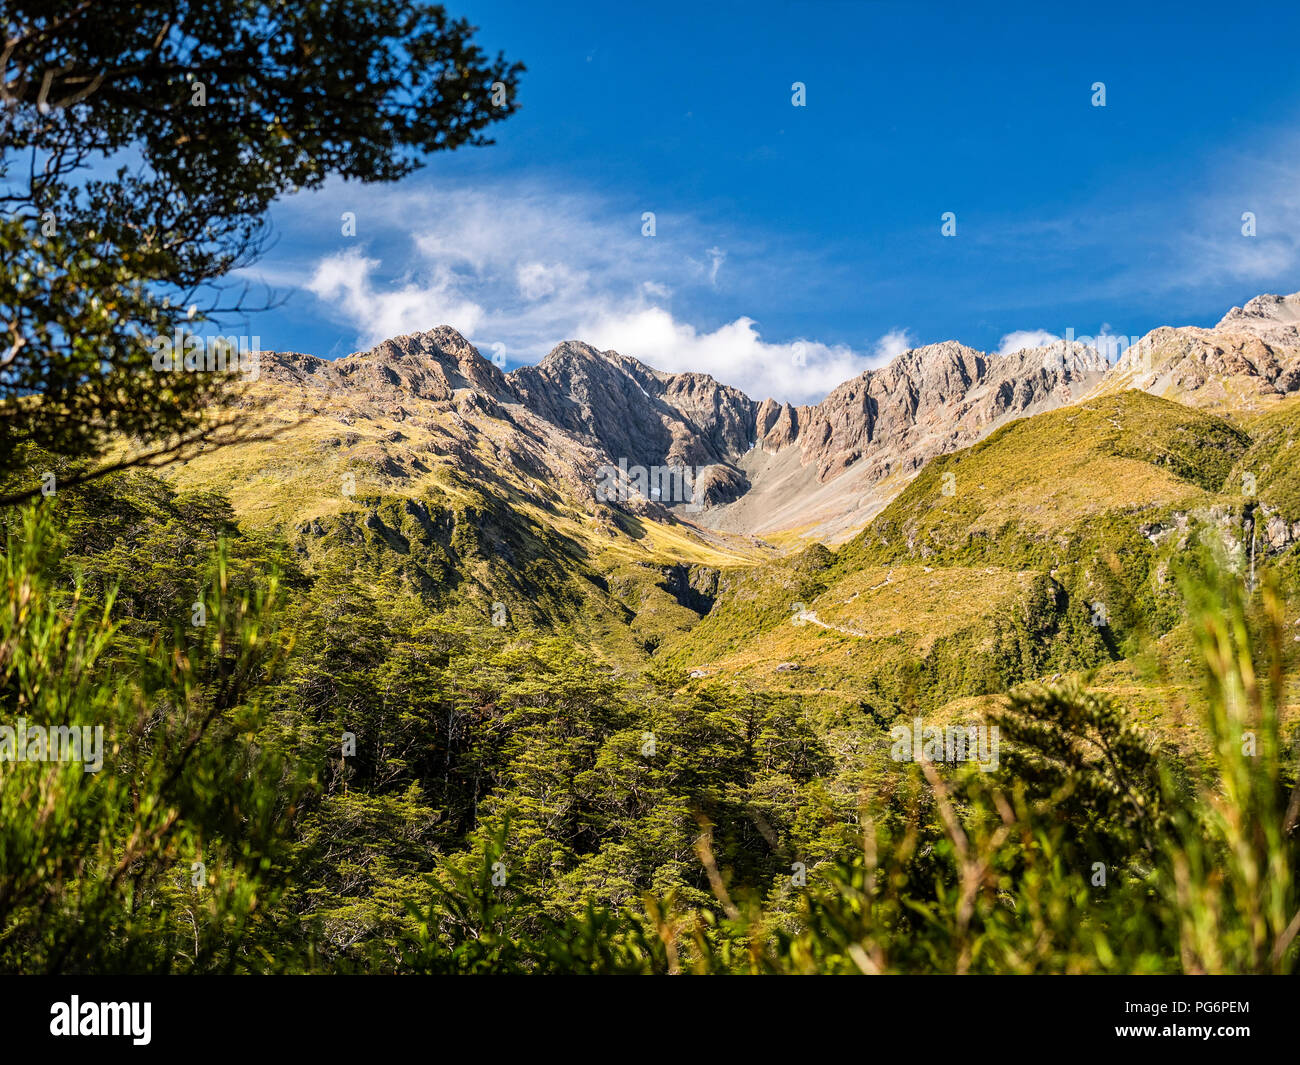 New Zealand, South Island, Canterbury Region, Arthur's Pass National Park, Arthur's Pass - Stock Image